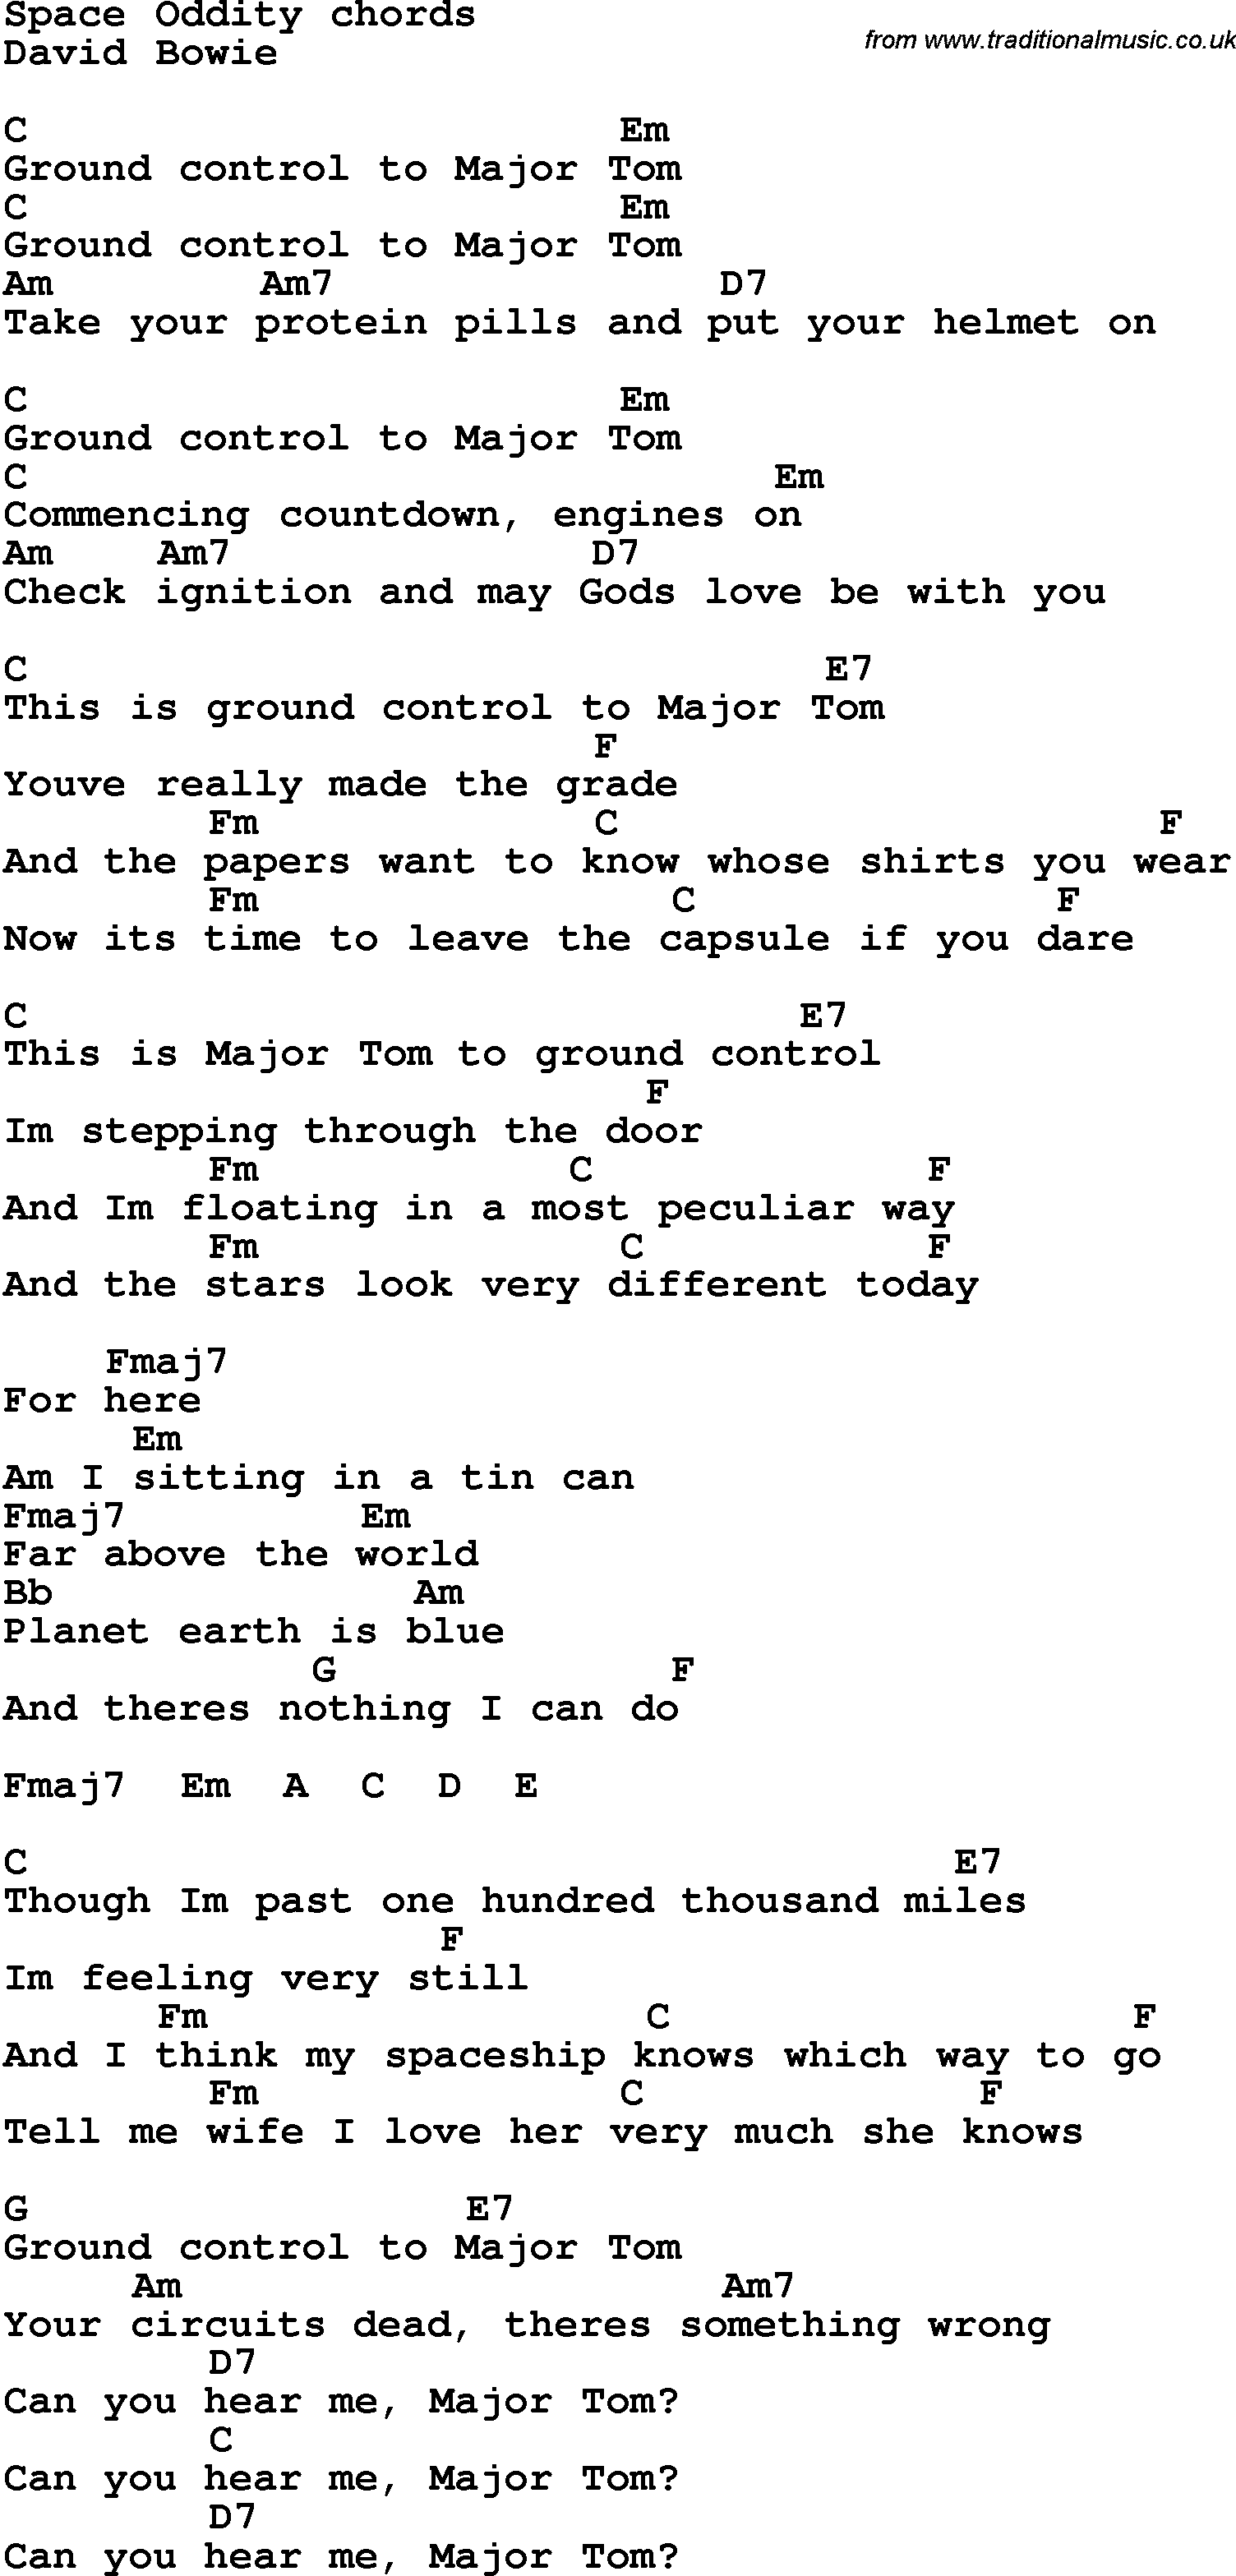 Lyrics With Guitar Chords For Space Oddity Chords For